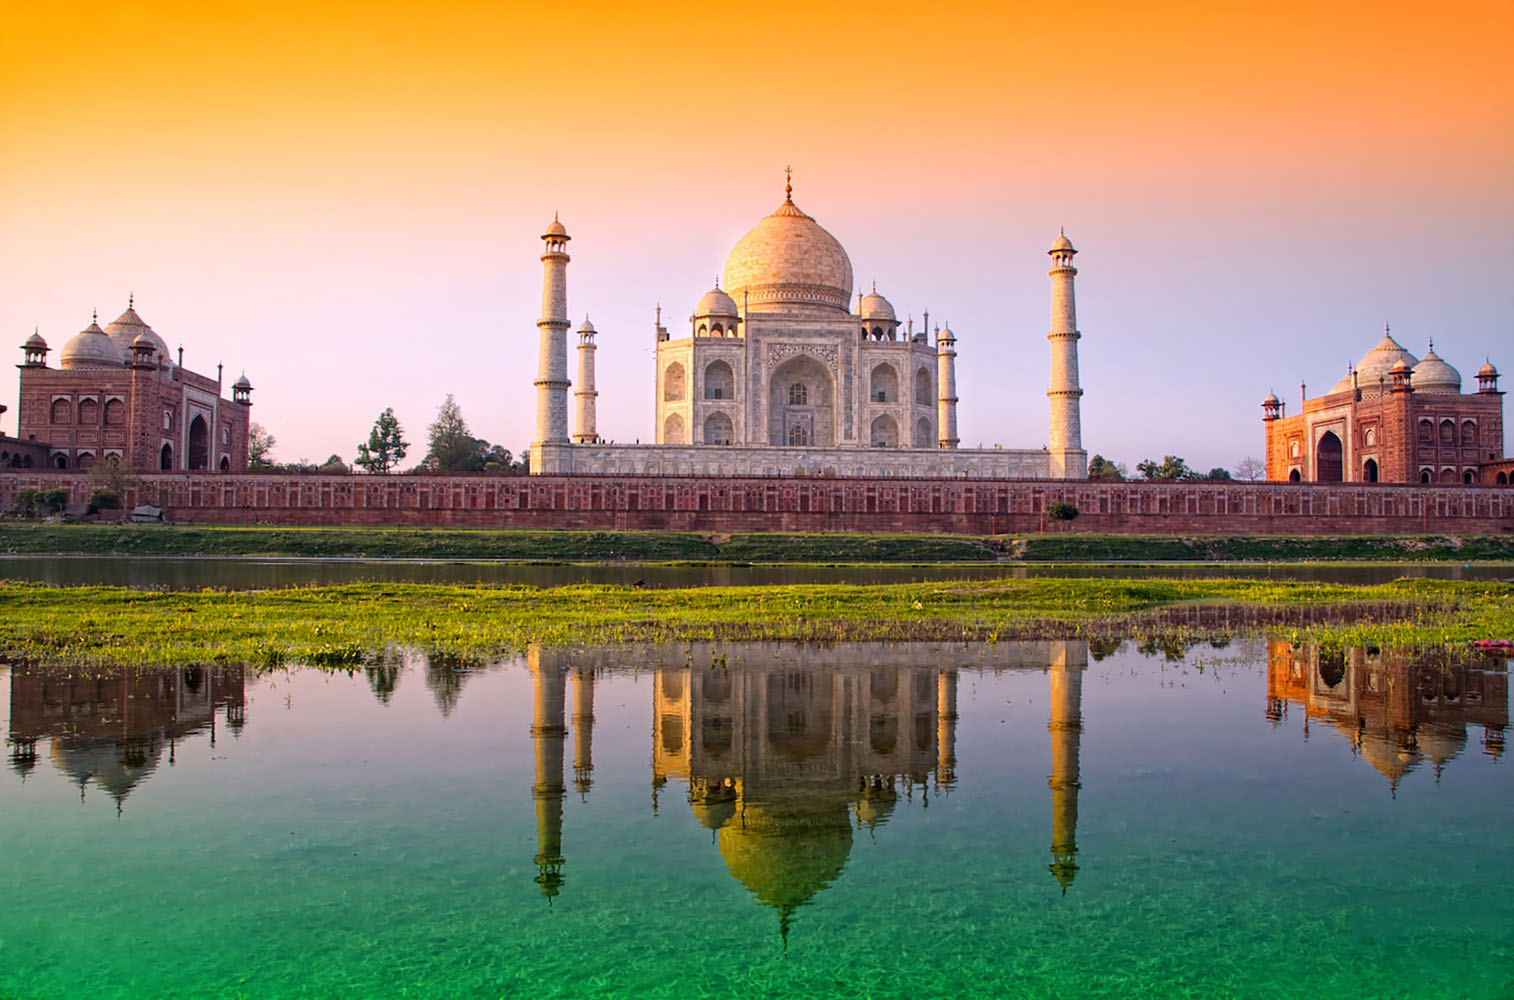 In Agra, the real star of your trip awaits—the Taj Mahal!